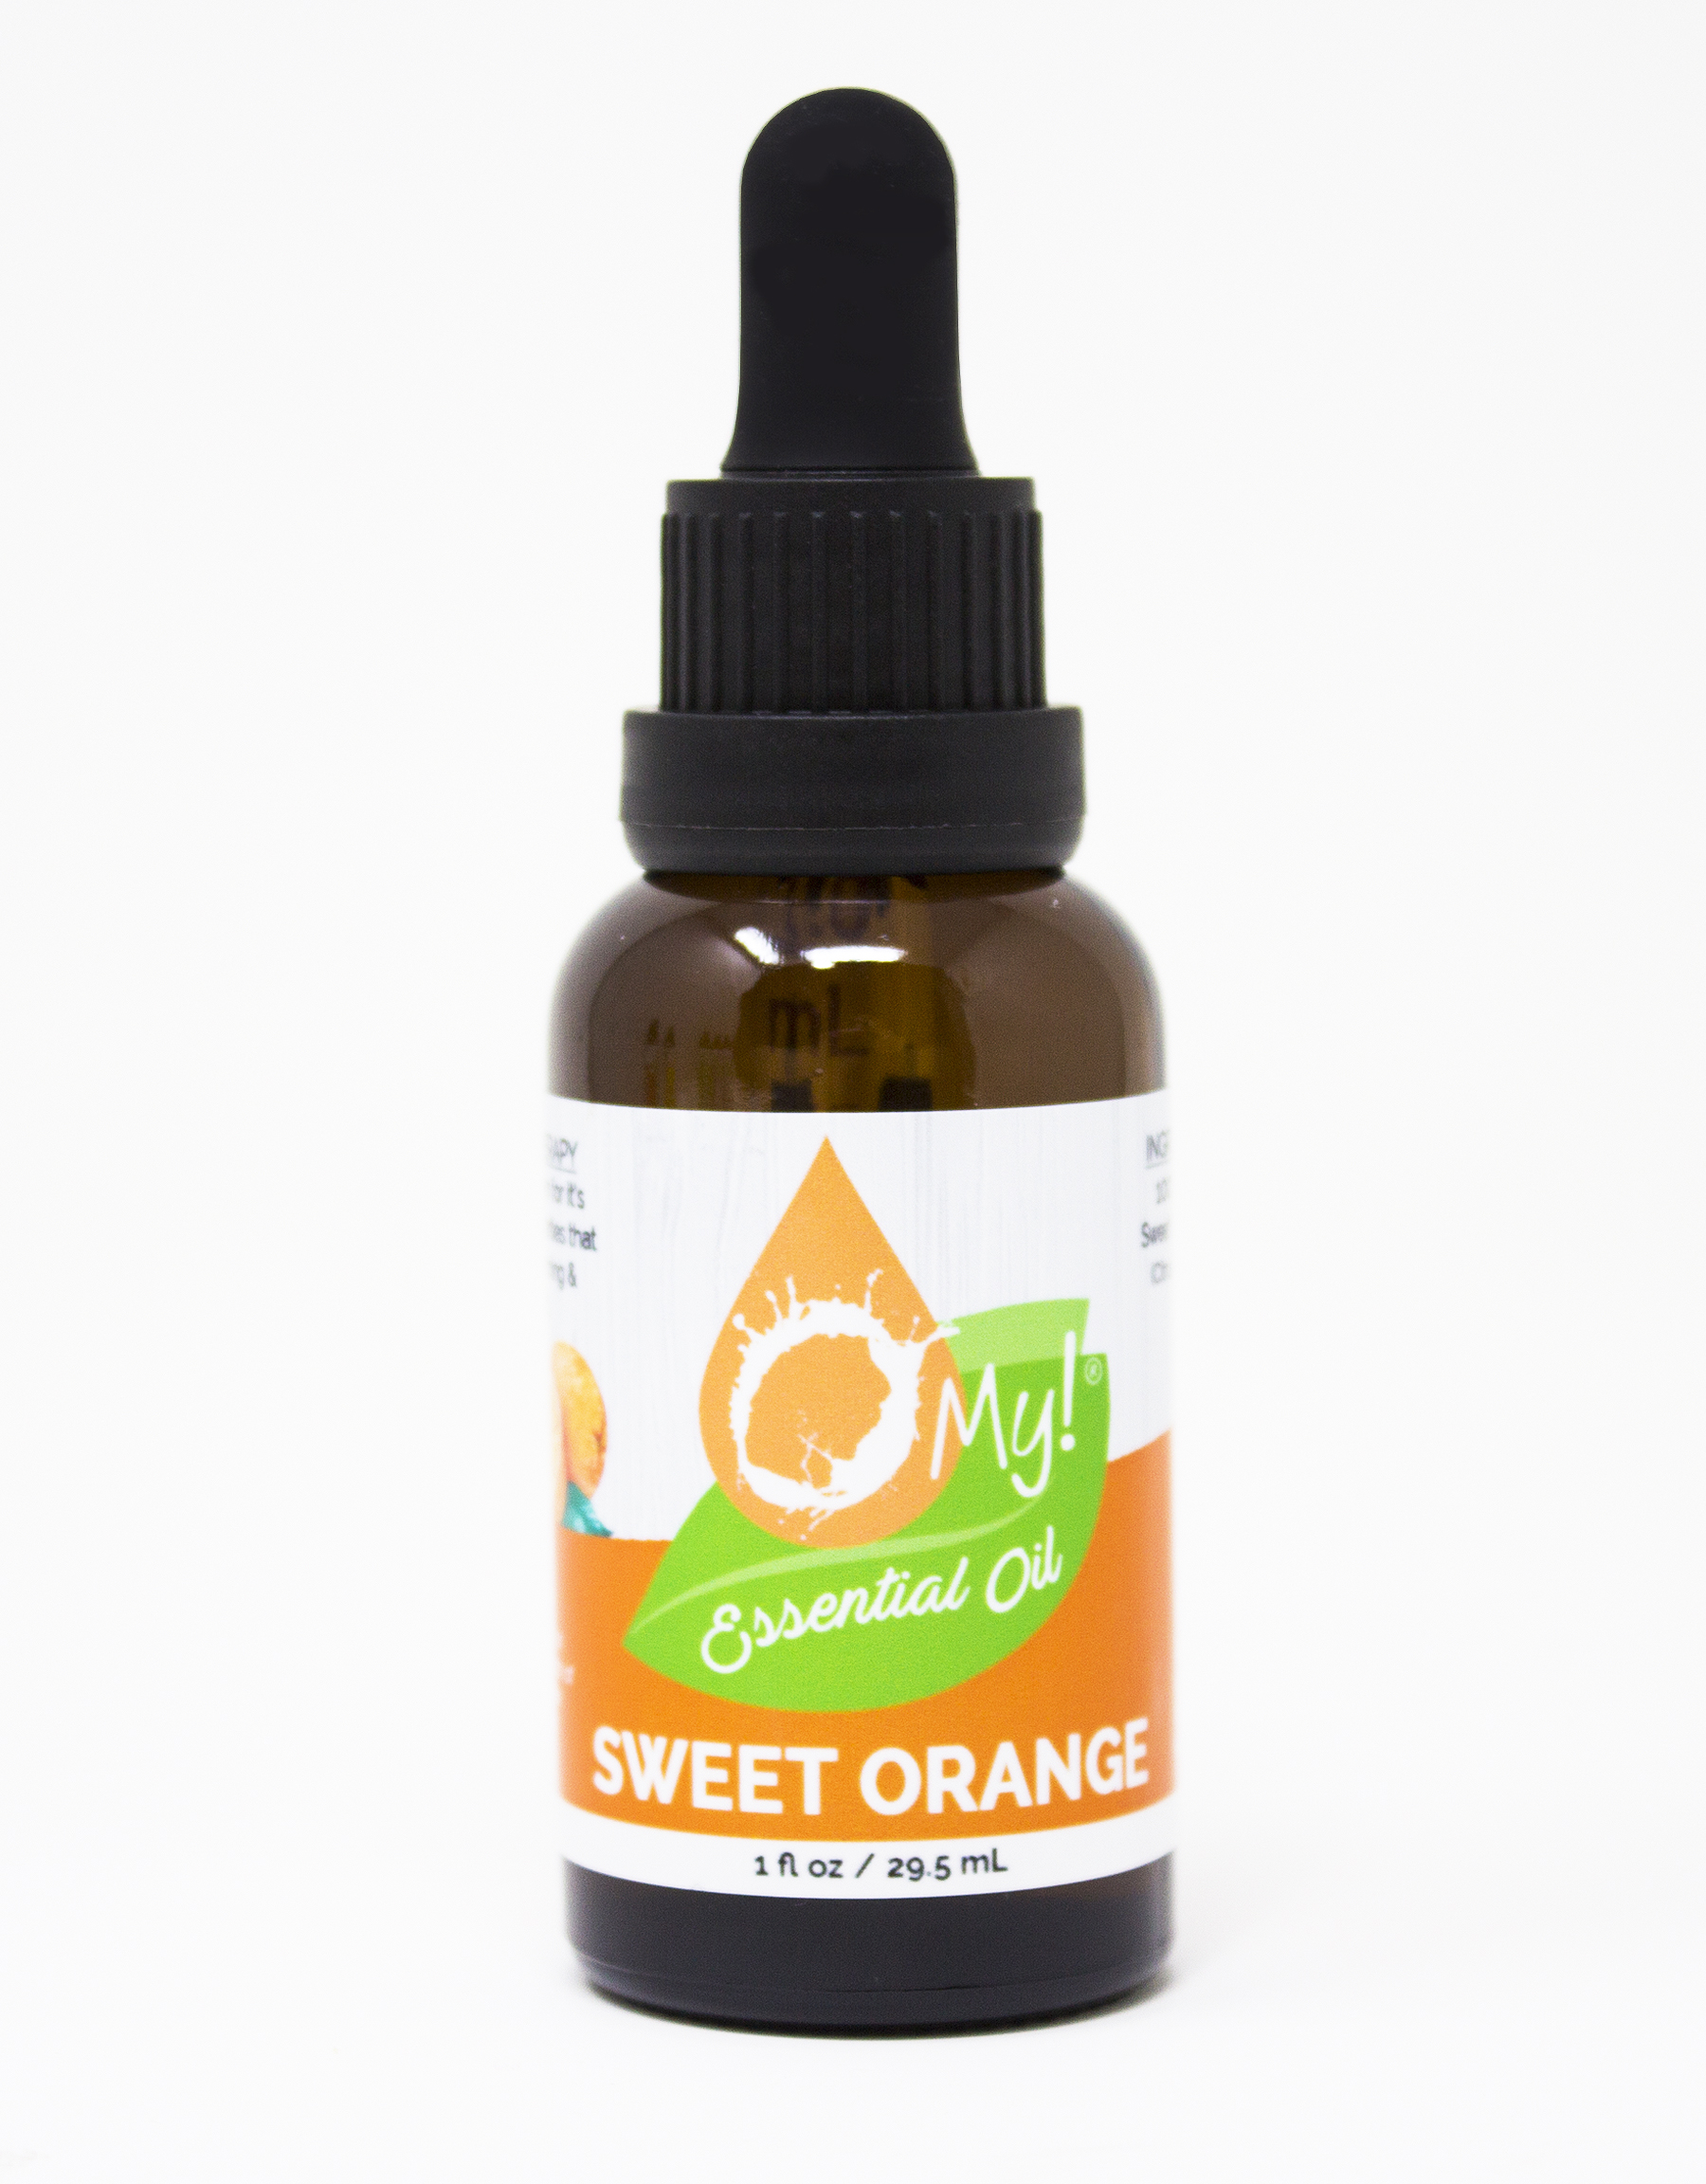 O My! 100% Pure Essential Oil 1oz - Sweet Orange | O My! 100% Pure Essential Oil1oz  Bottles with Graduated Droppers | Child-resistent, Tamper-proof | Start your Aromatherapy Plan today!